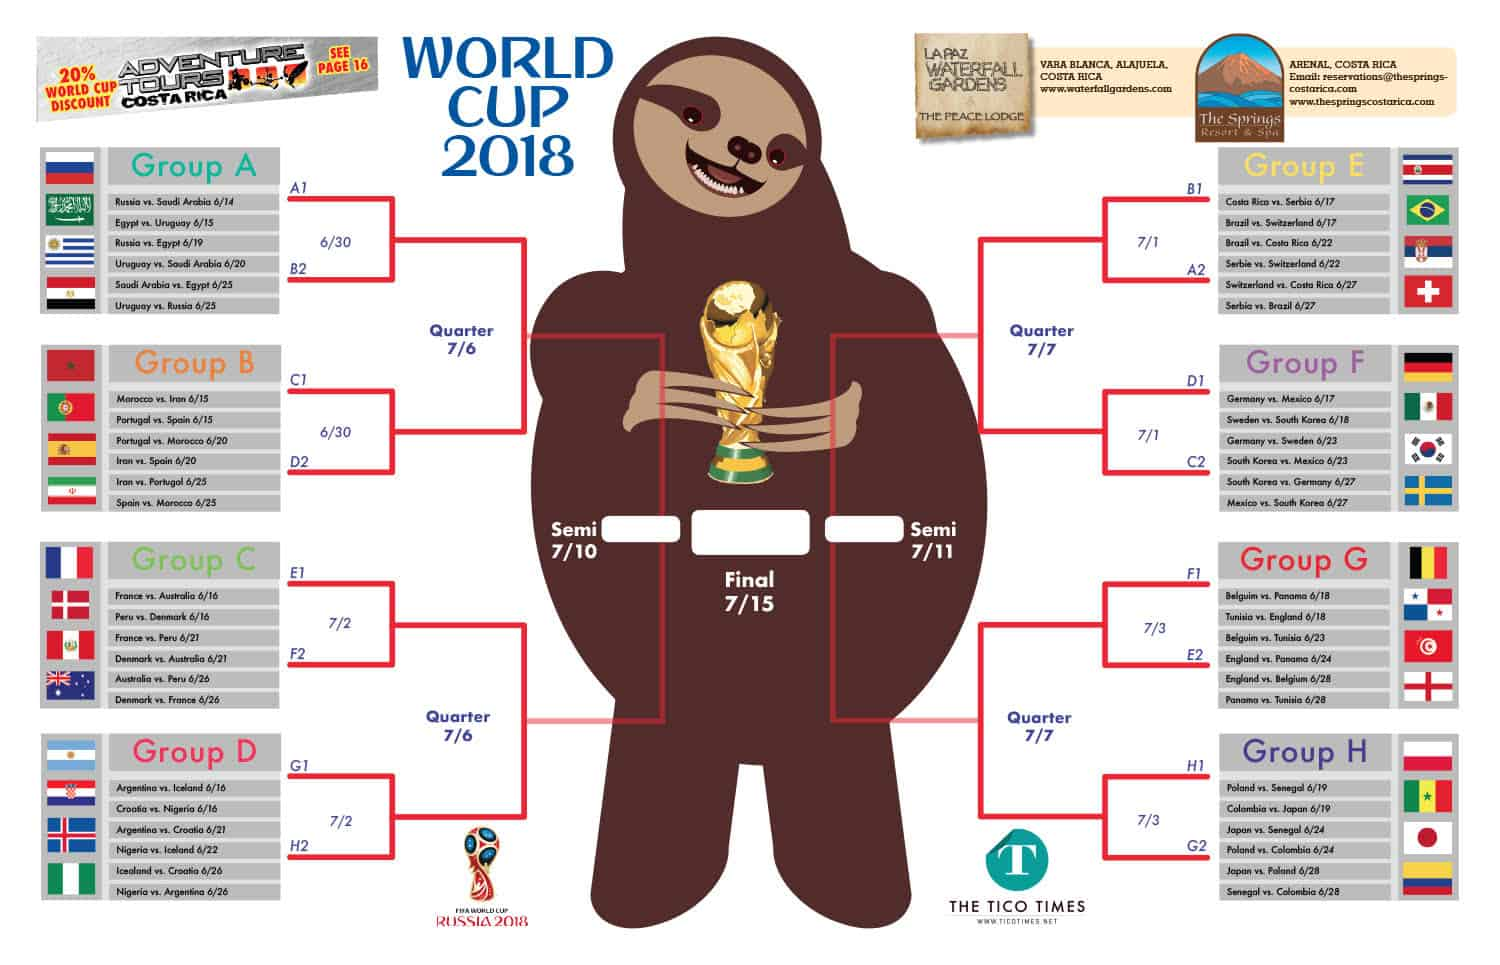 picture regarding World Cup Bracket Printable referred to as Down load printable Sloth Kong Earth Cup brackets The Tico